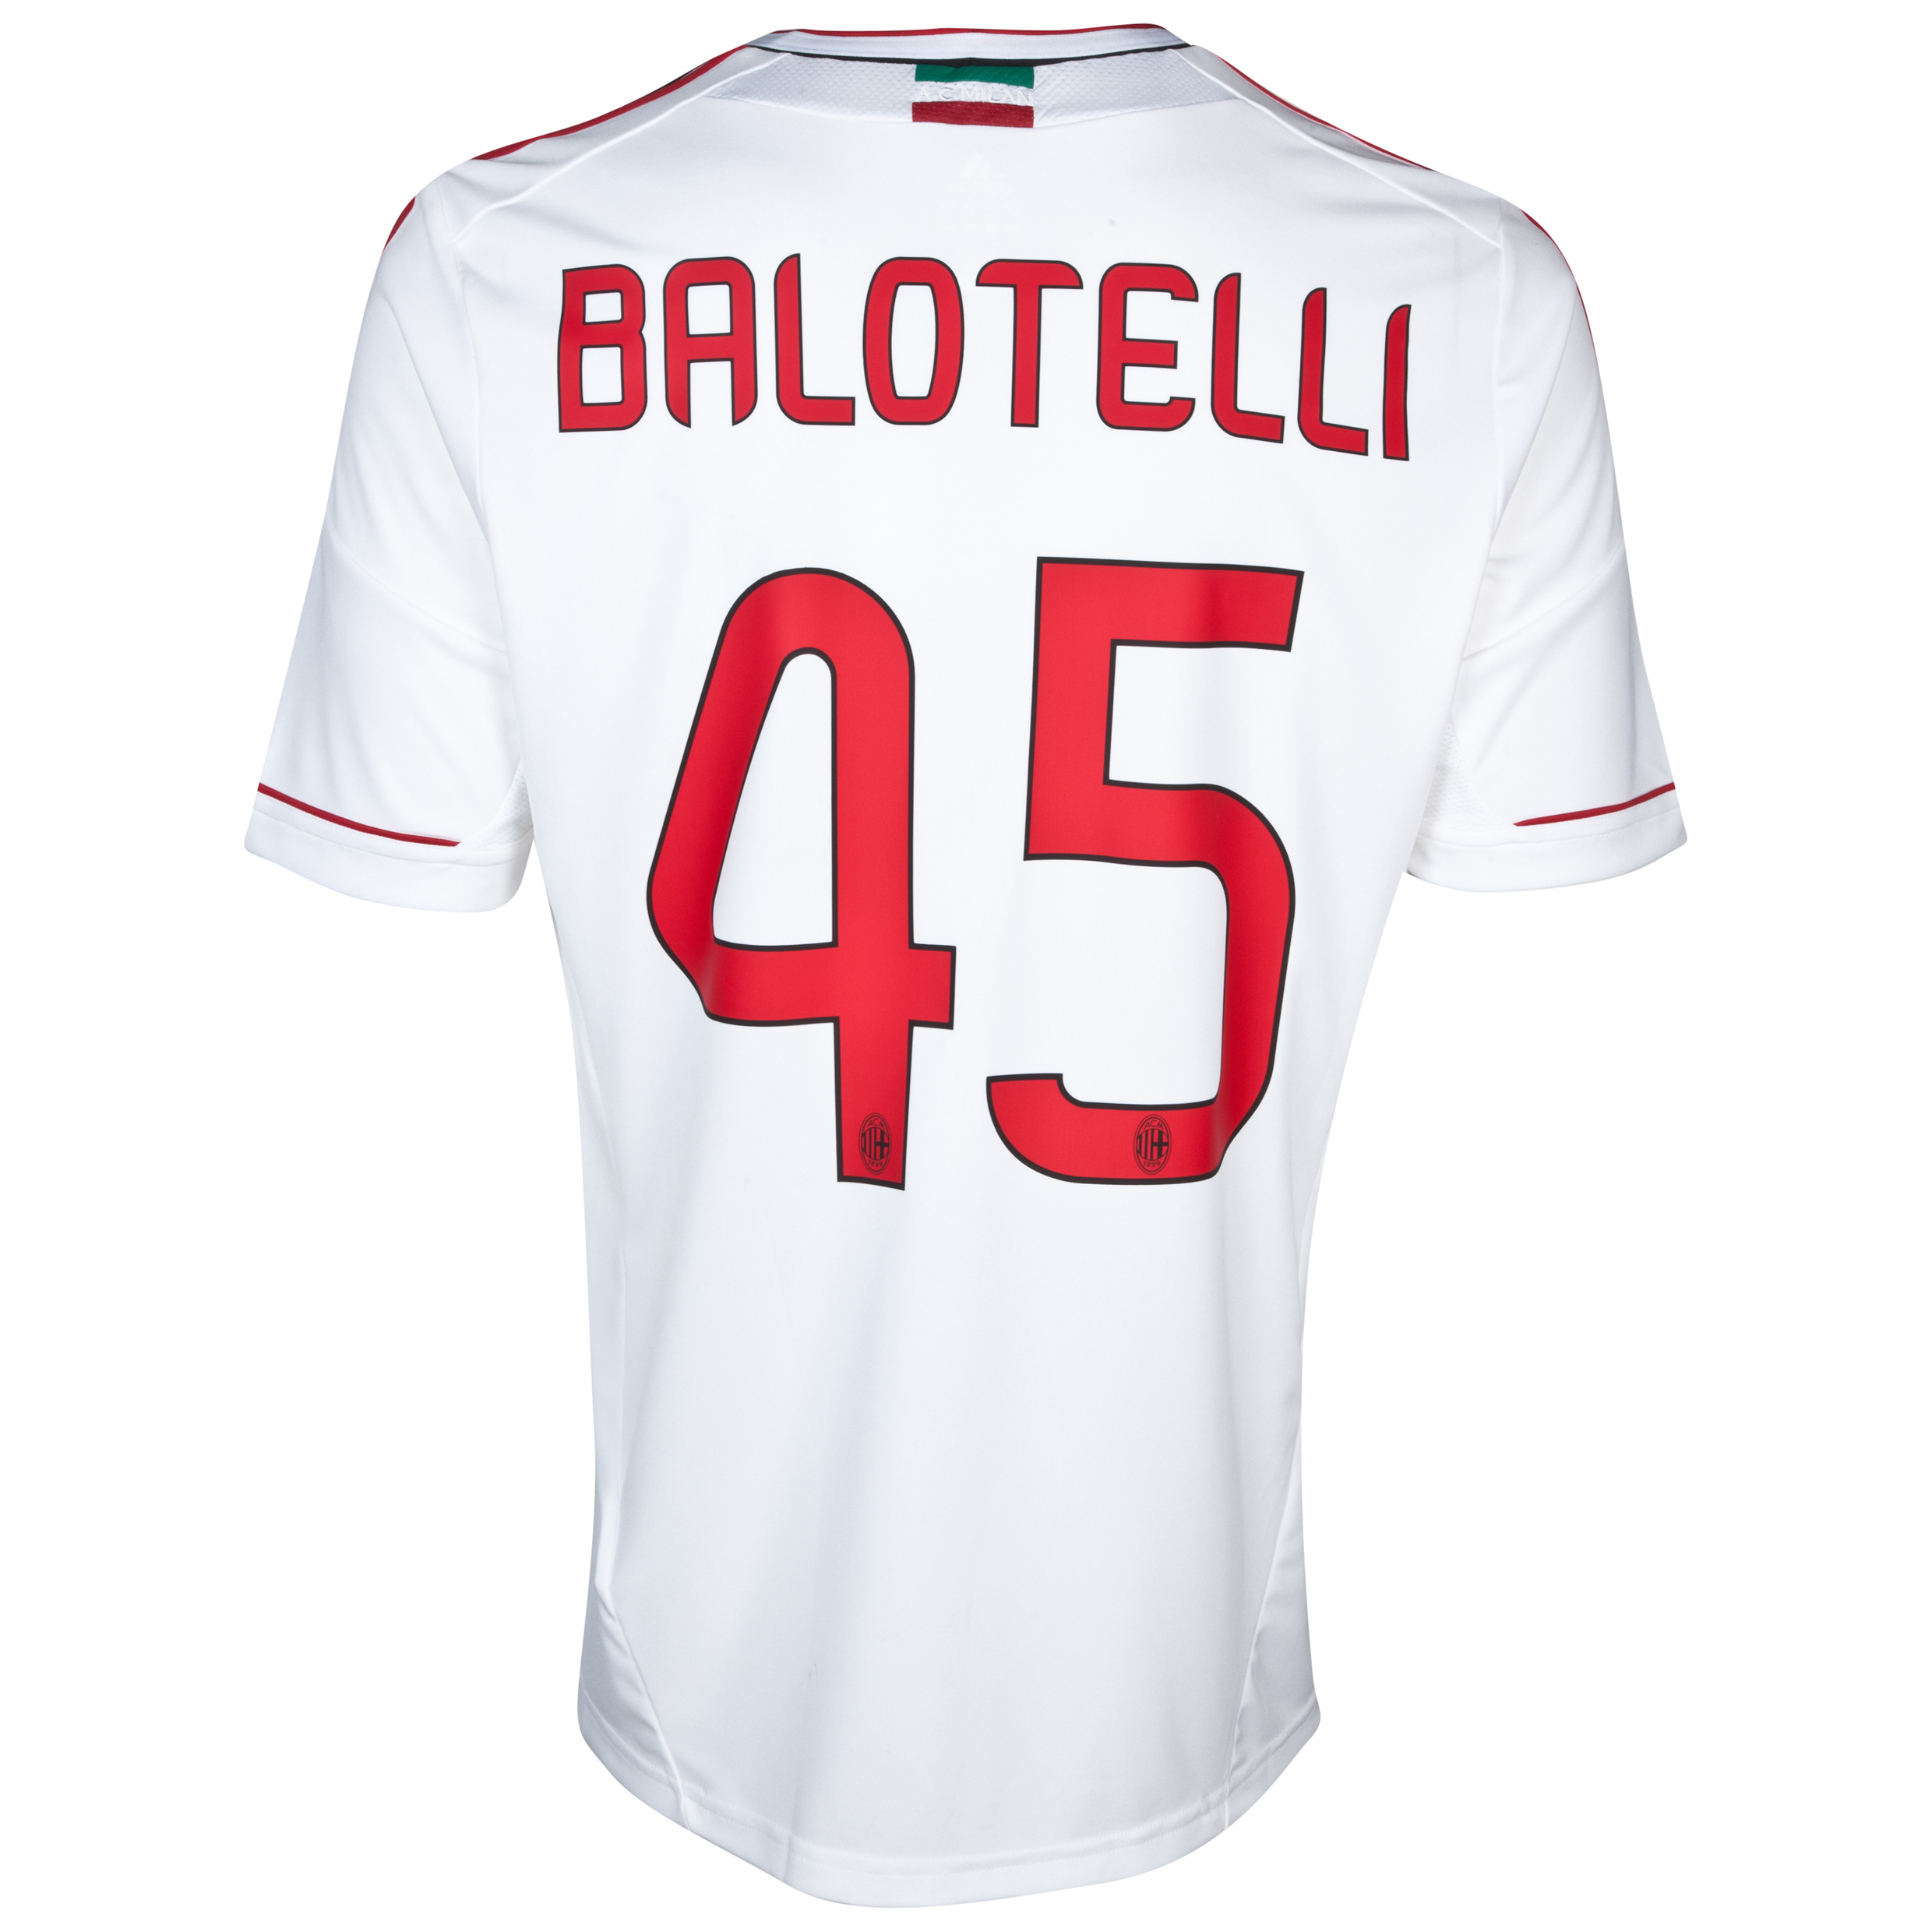 AC Milan Away Shirt 2012/13 - Youths with Balotelli 45 printing